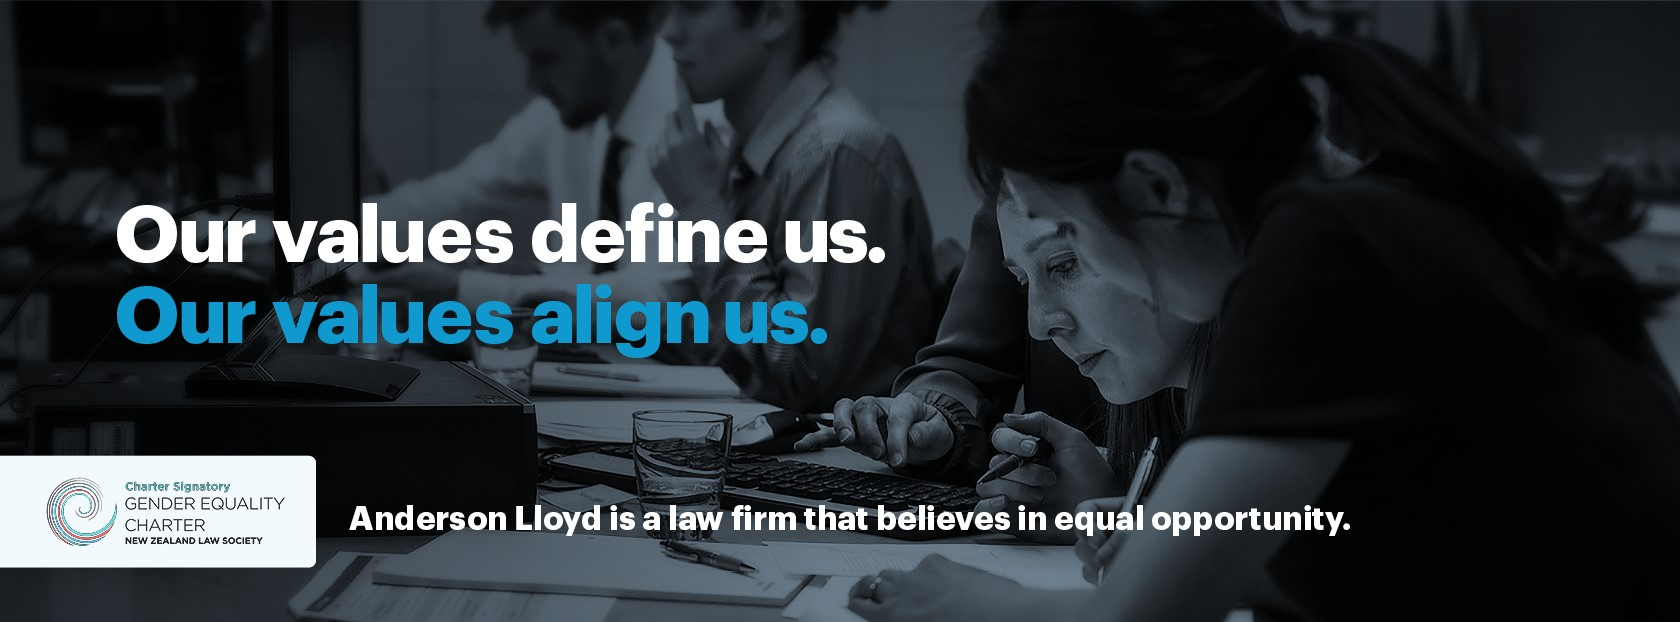 Anderson Lloyd is a law firm that believes in equal opportunity